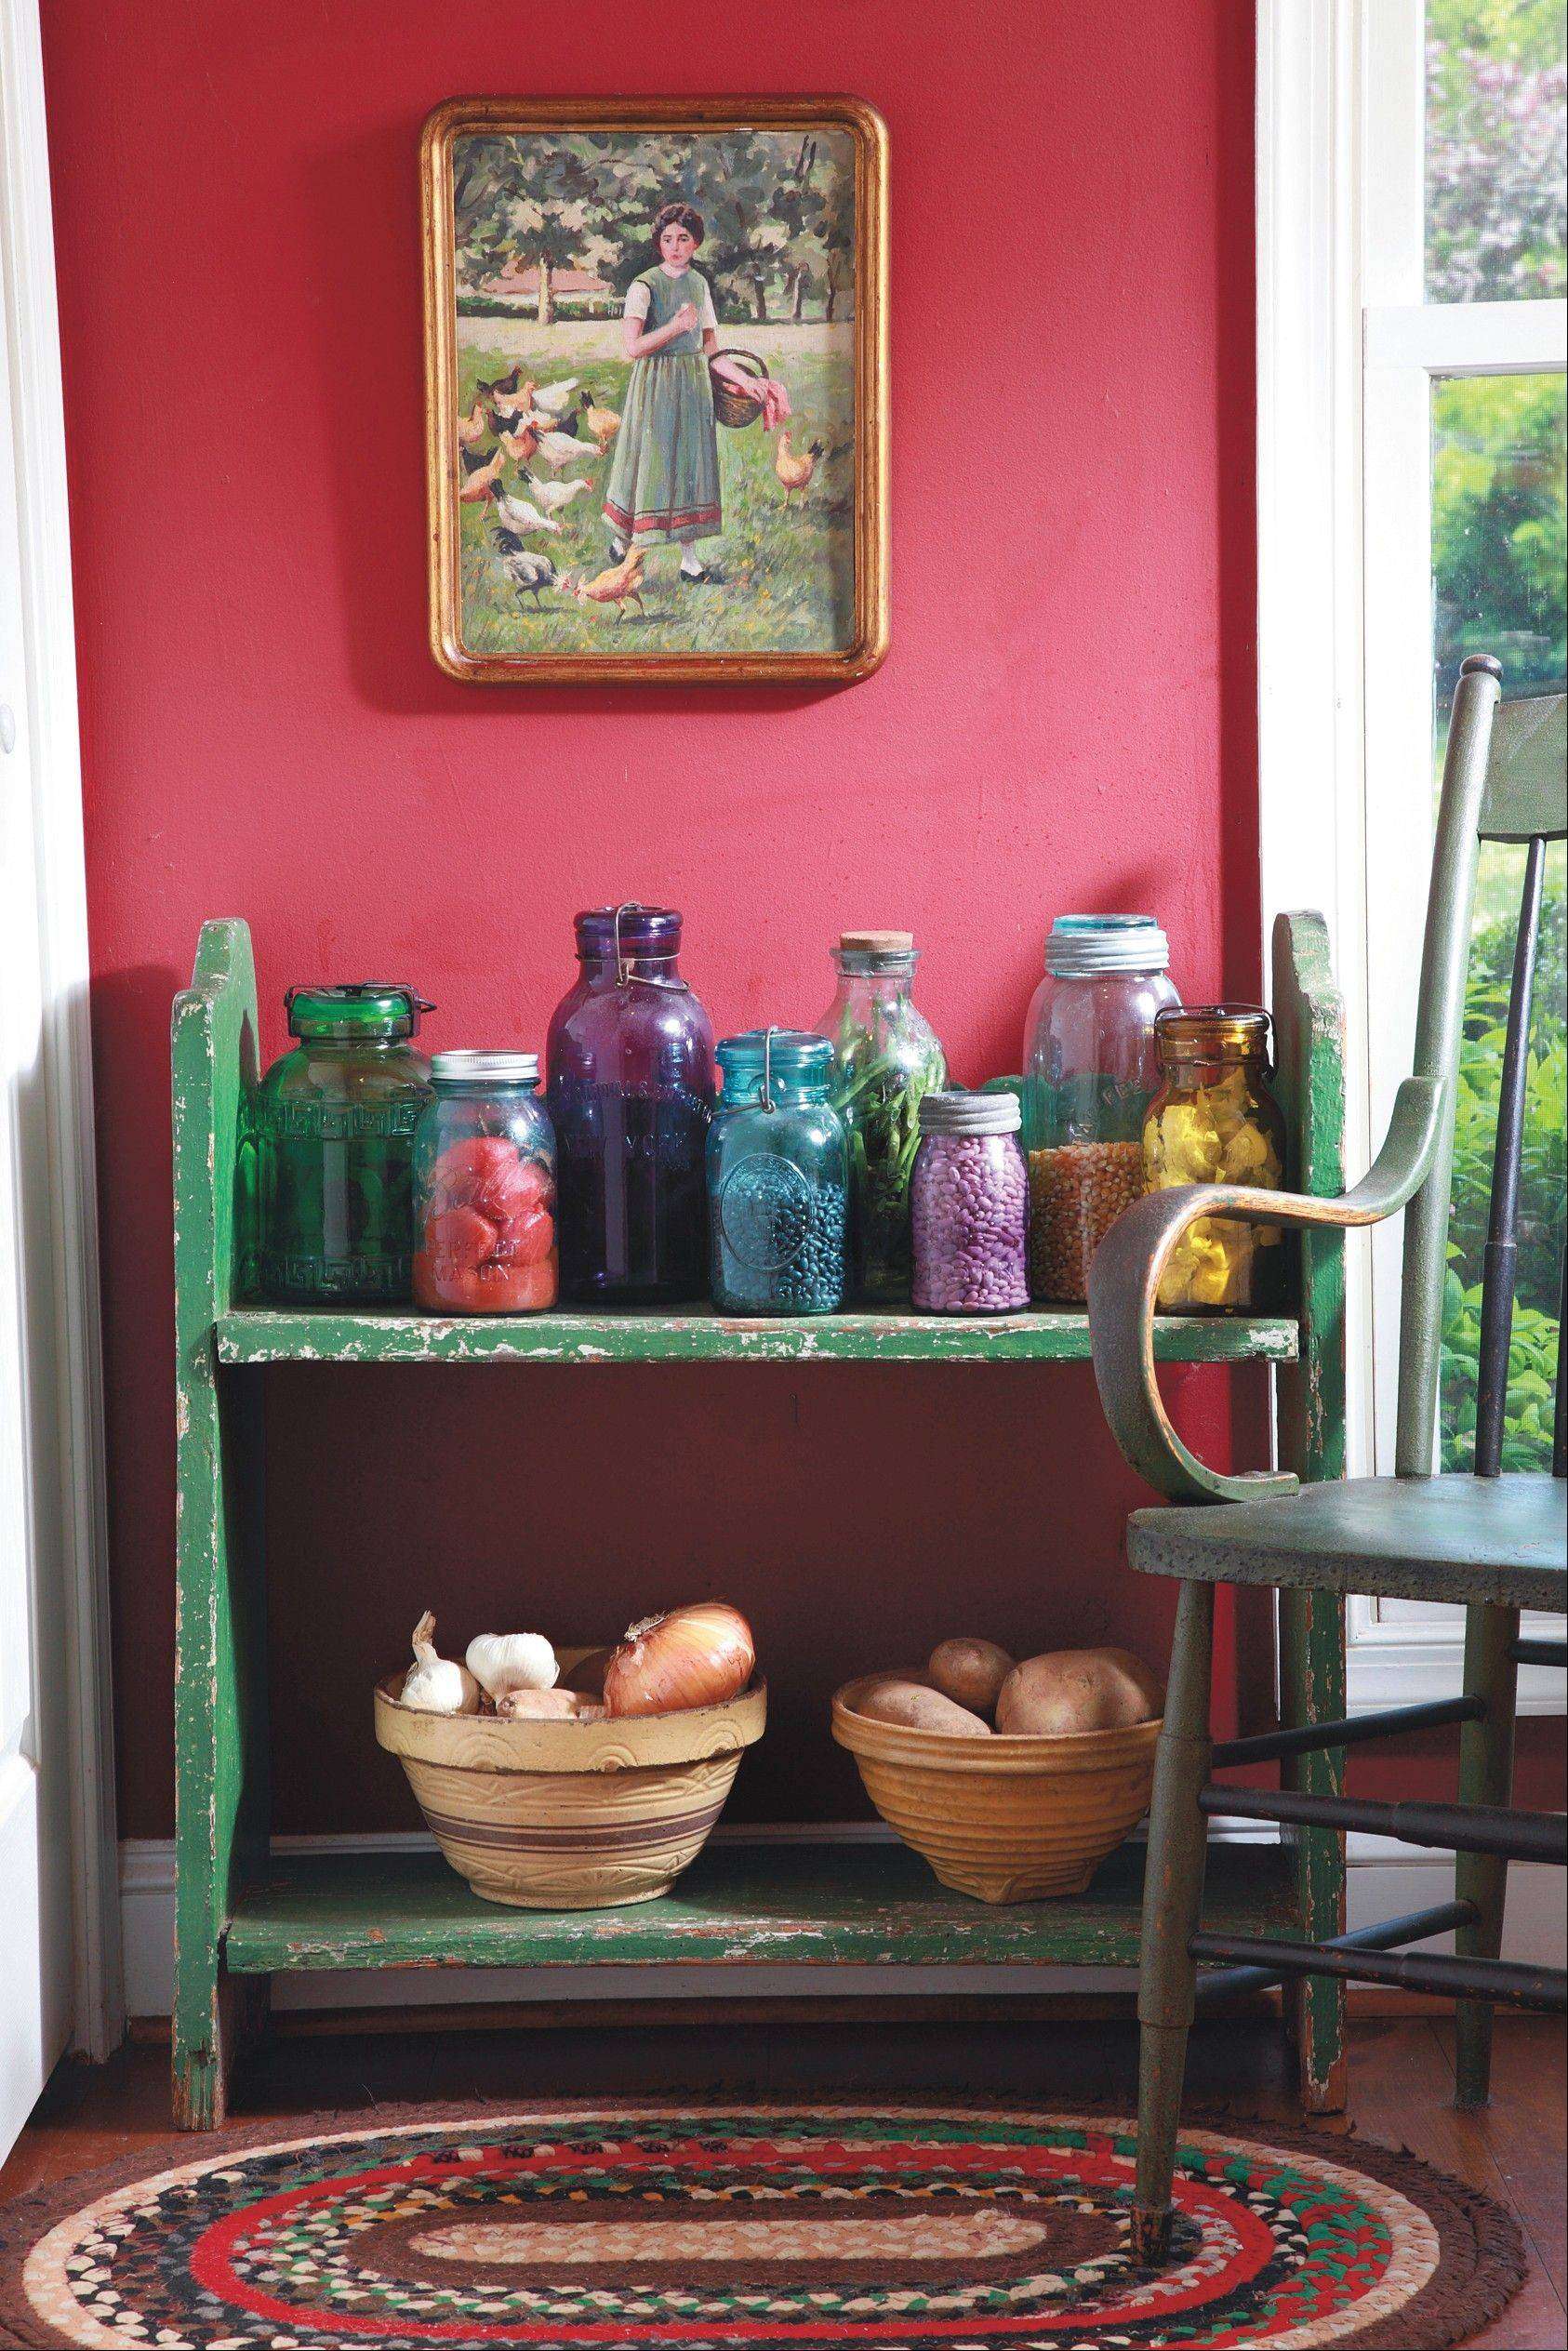 Old canning jars are plentiful and easy to find, though some colors of glass are rare and difficult to find.